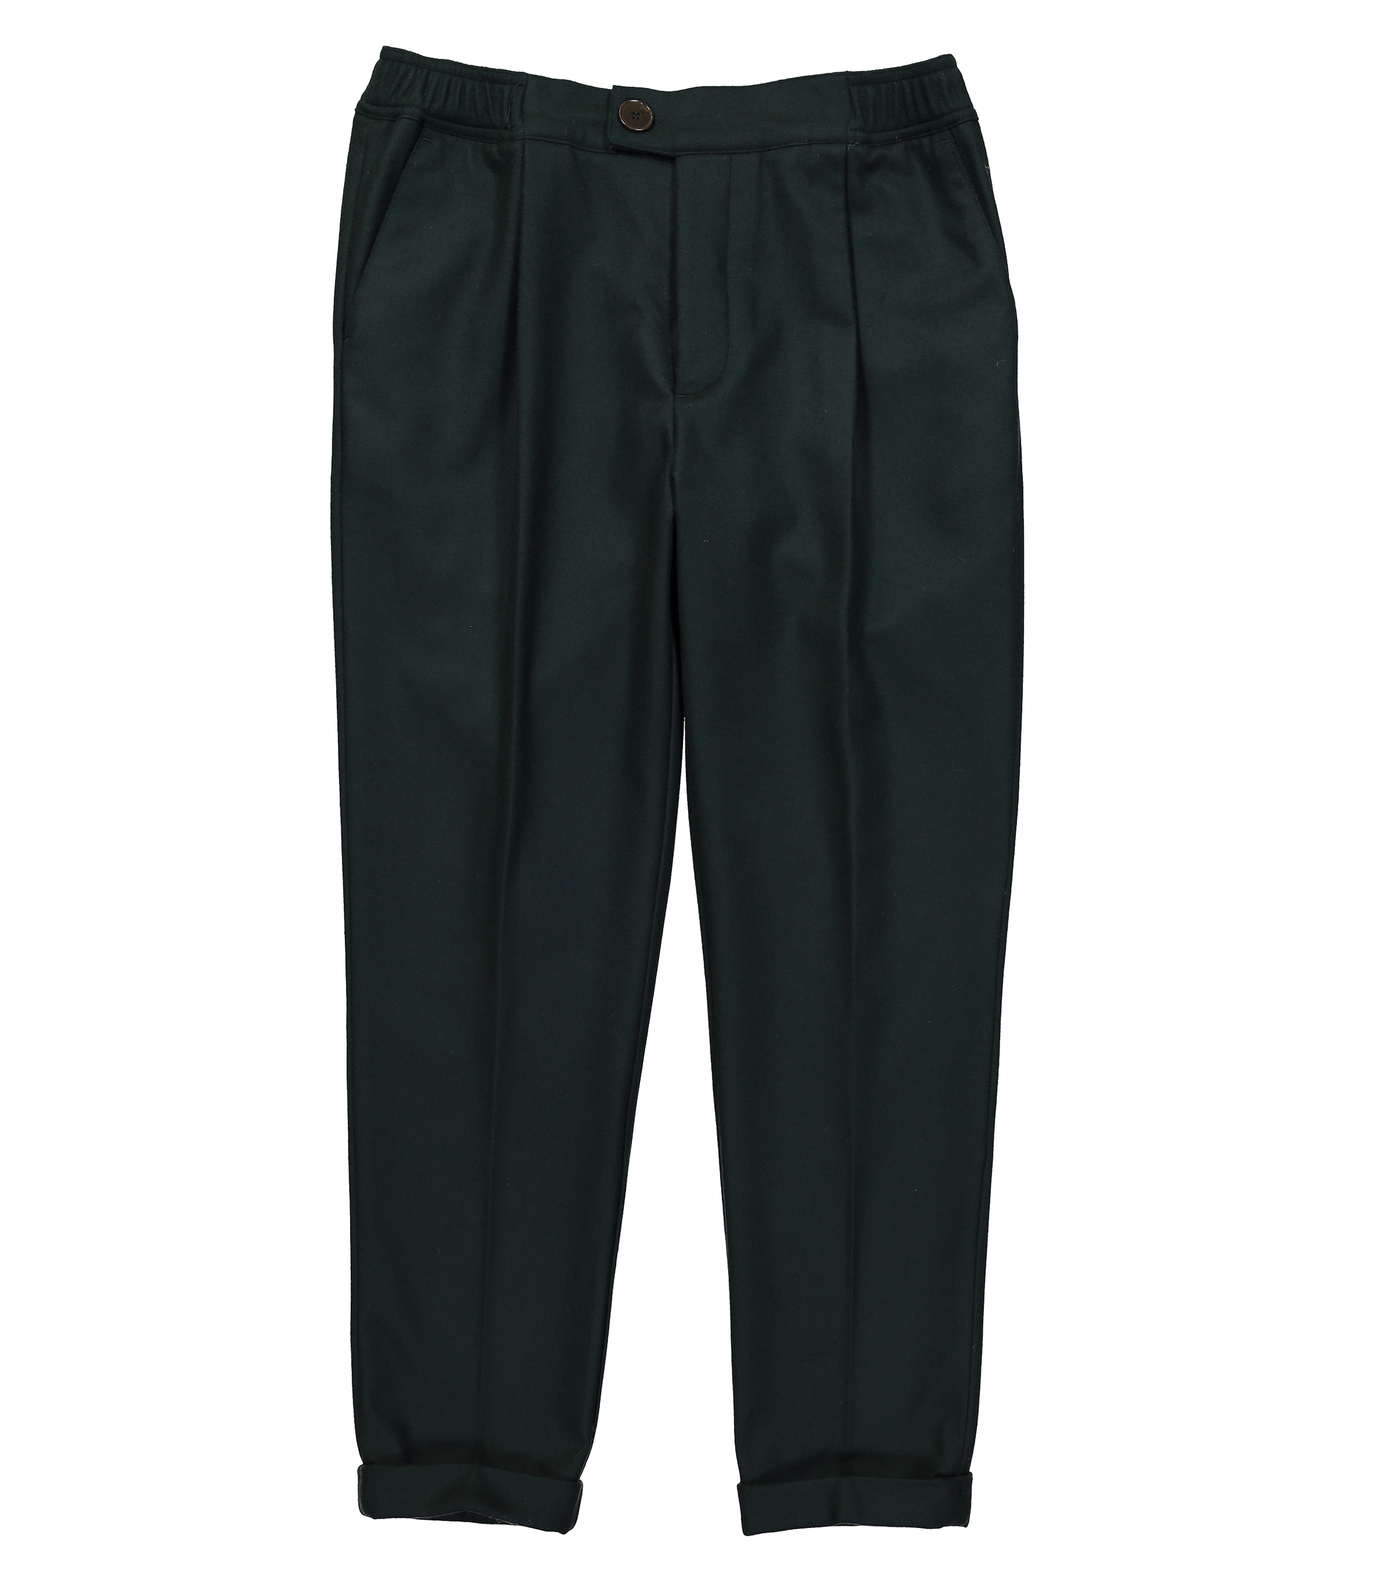 PANTS GN11 - Green